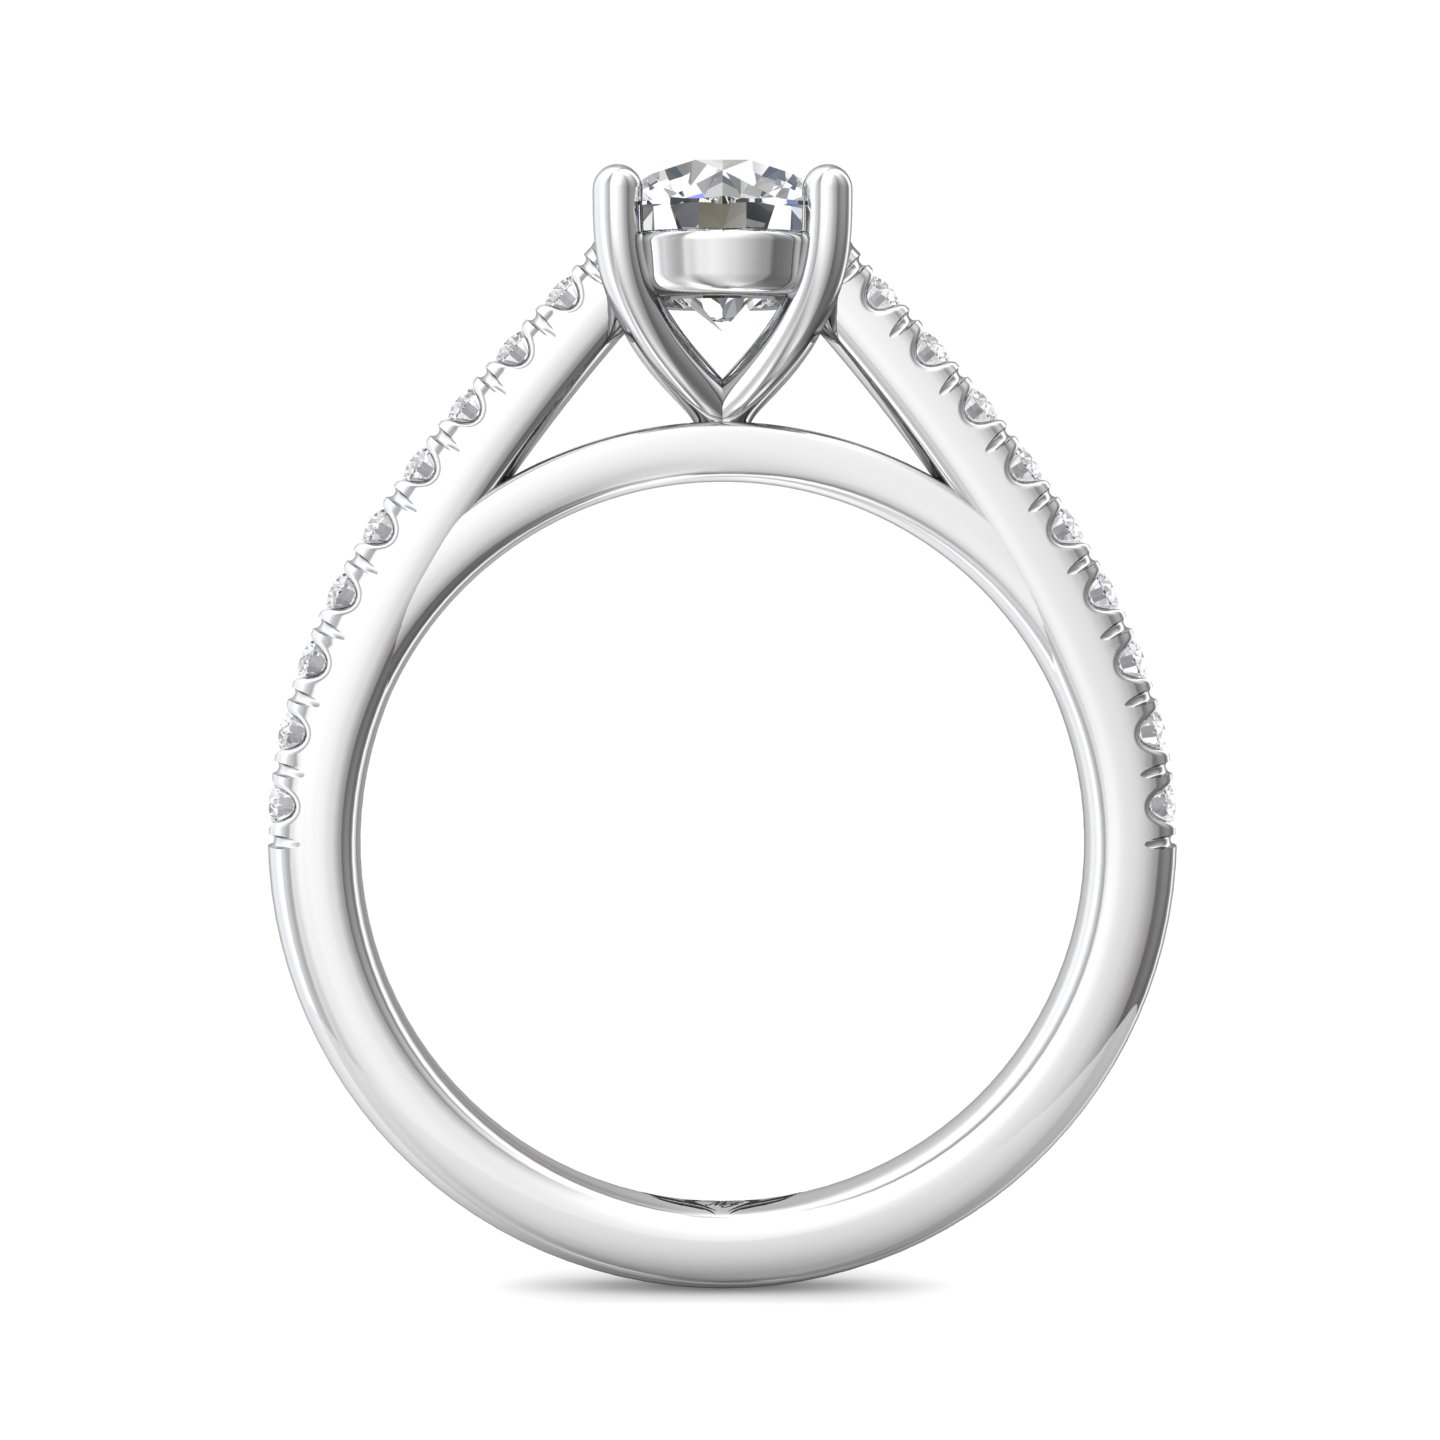 Rings - 14K White Gold FlyerFit Micropave Engagement Ring - image #2